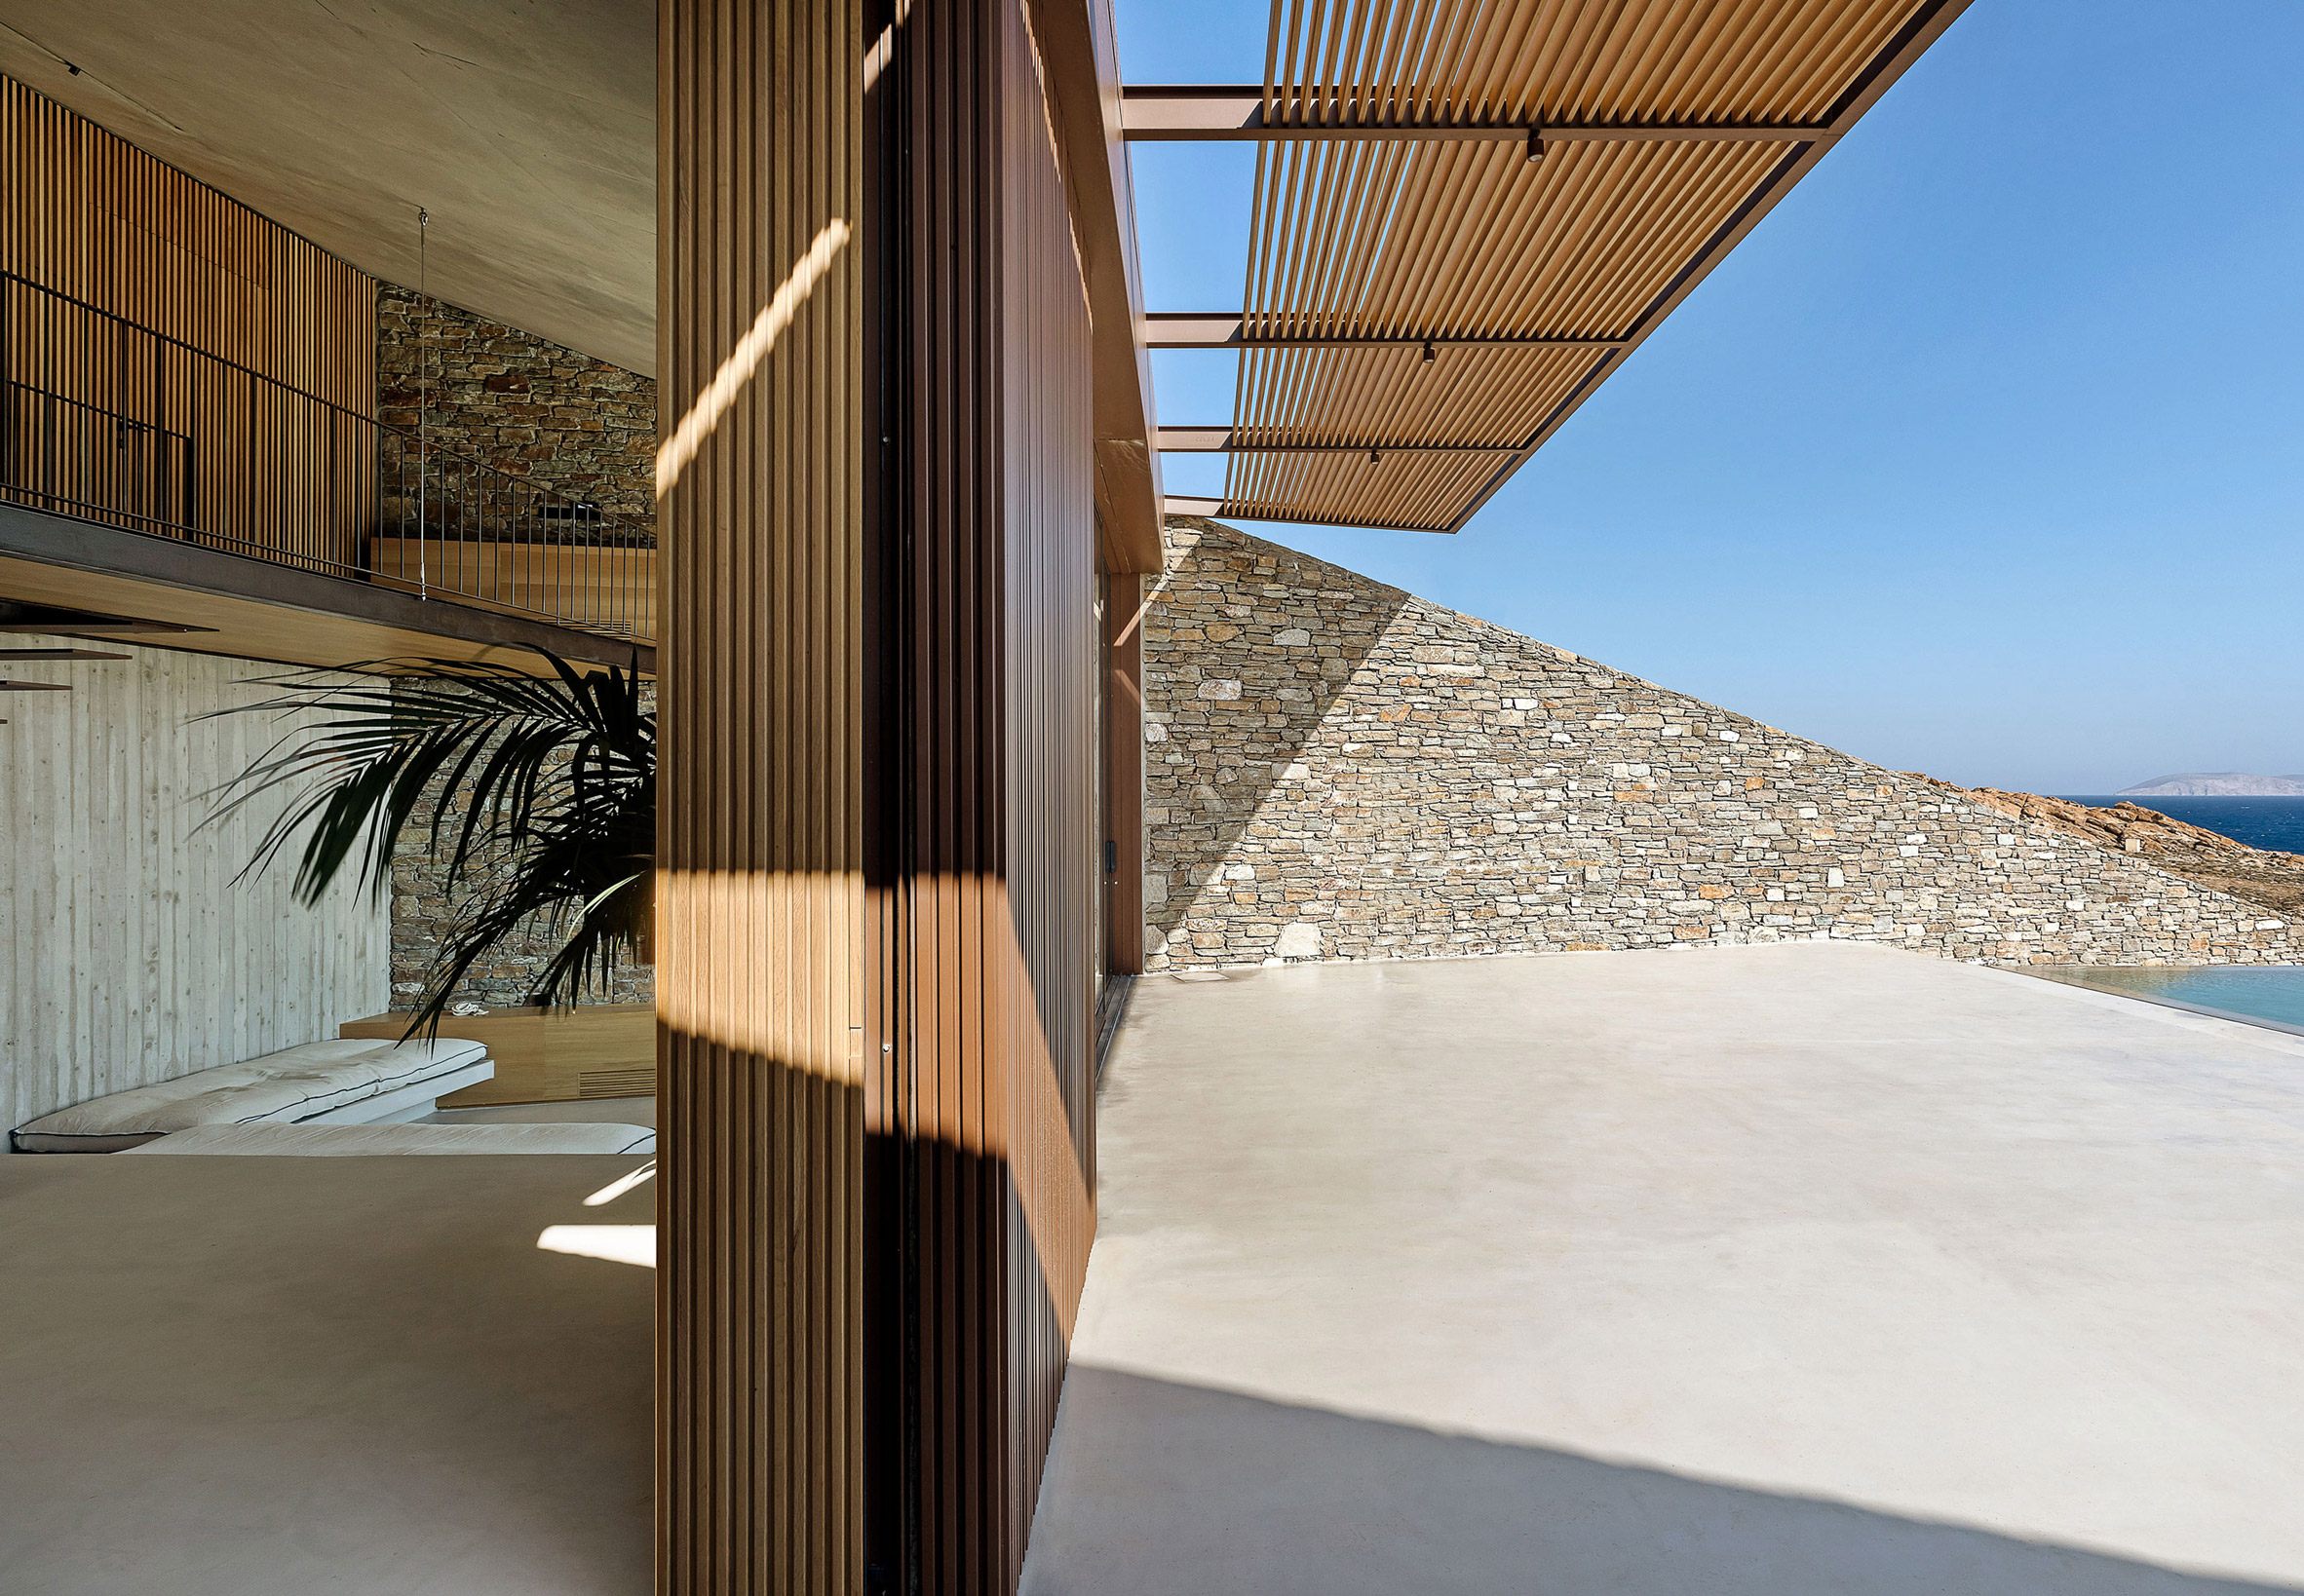 Stone angled wall runs through the entire home